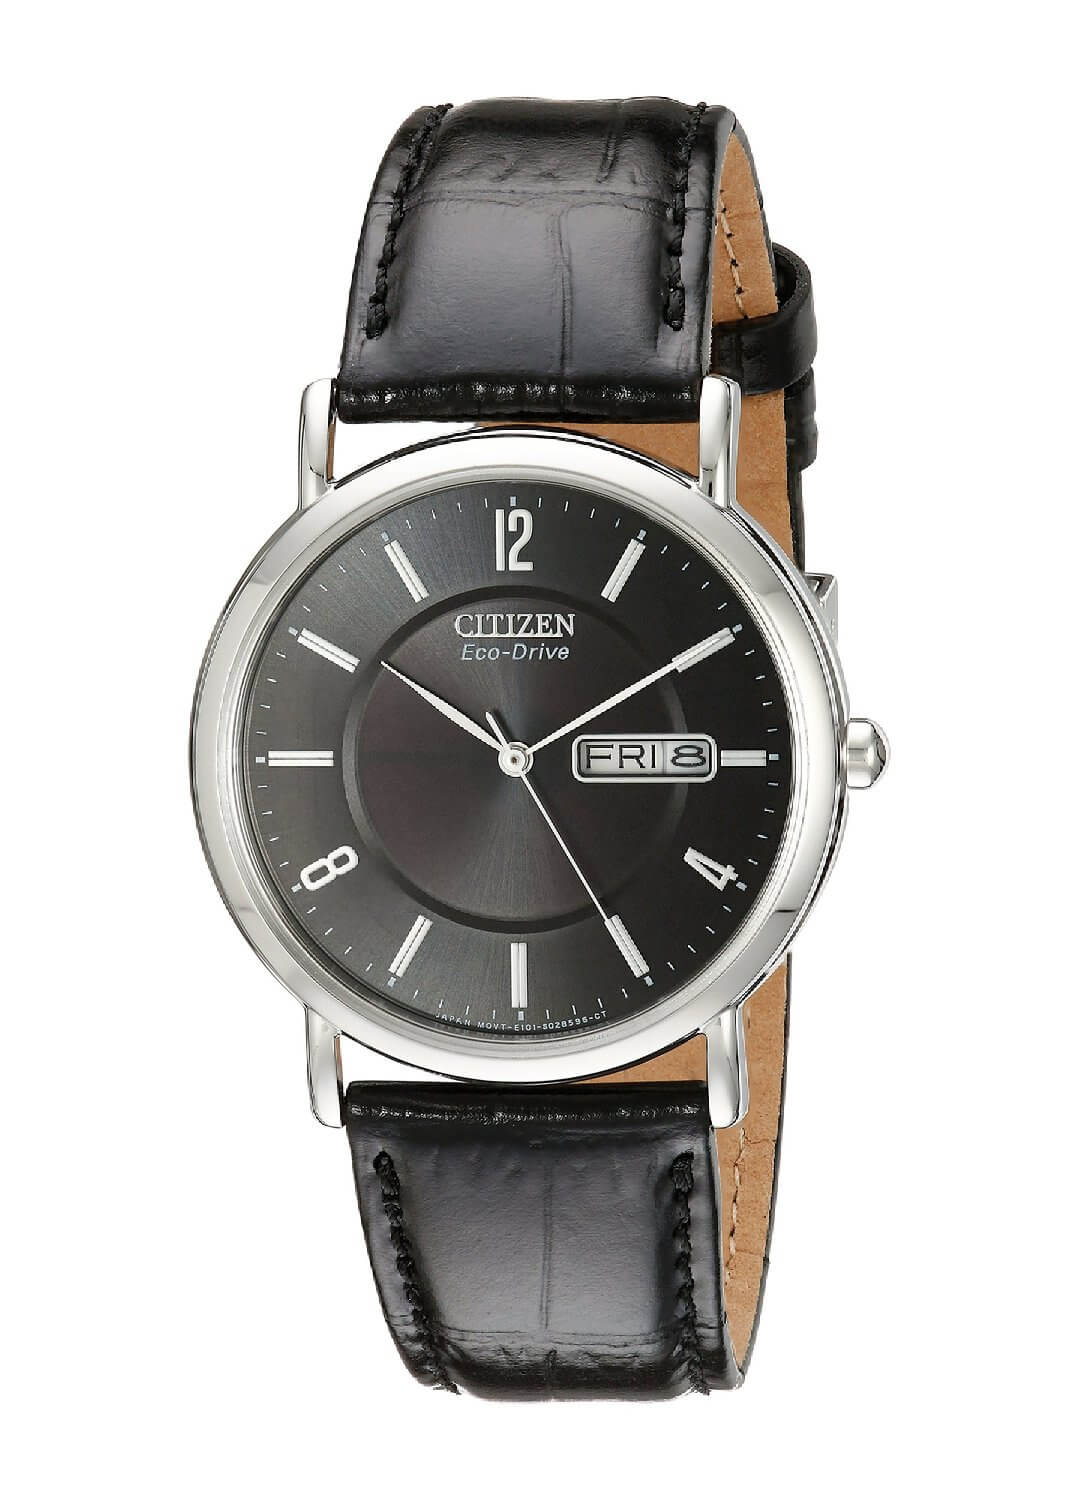 Citizen Men's Eco-Drive Stainless Steel with Leather Band BM8240-03E